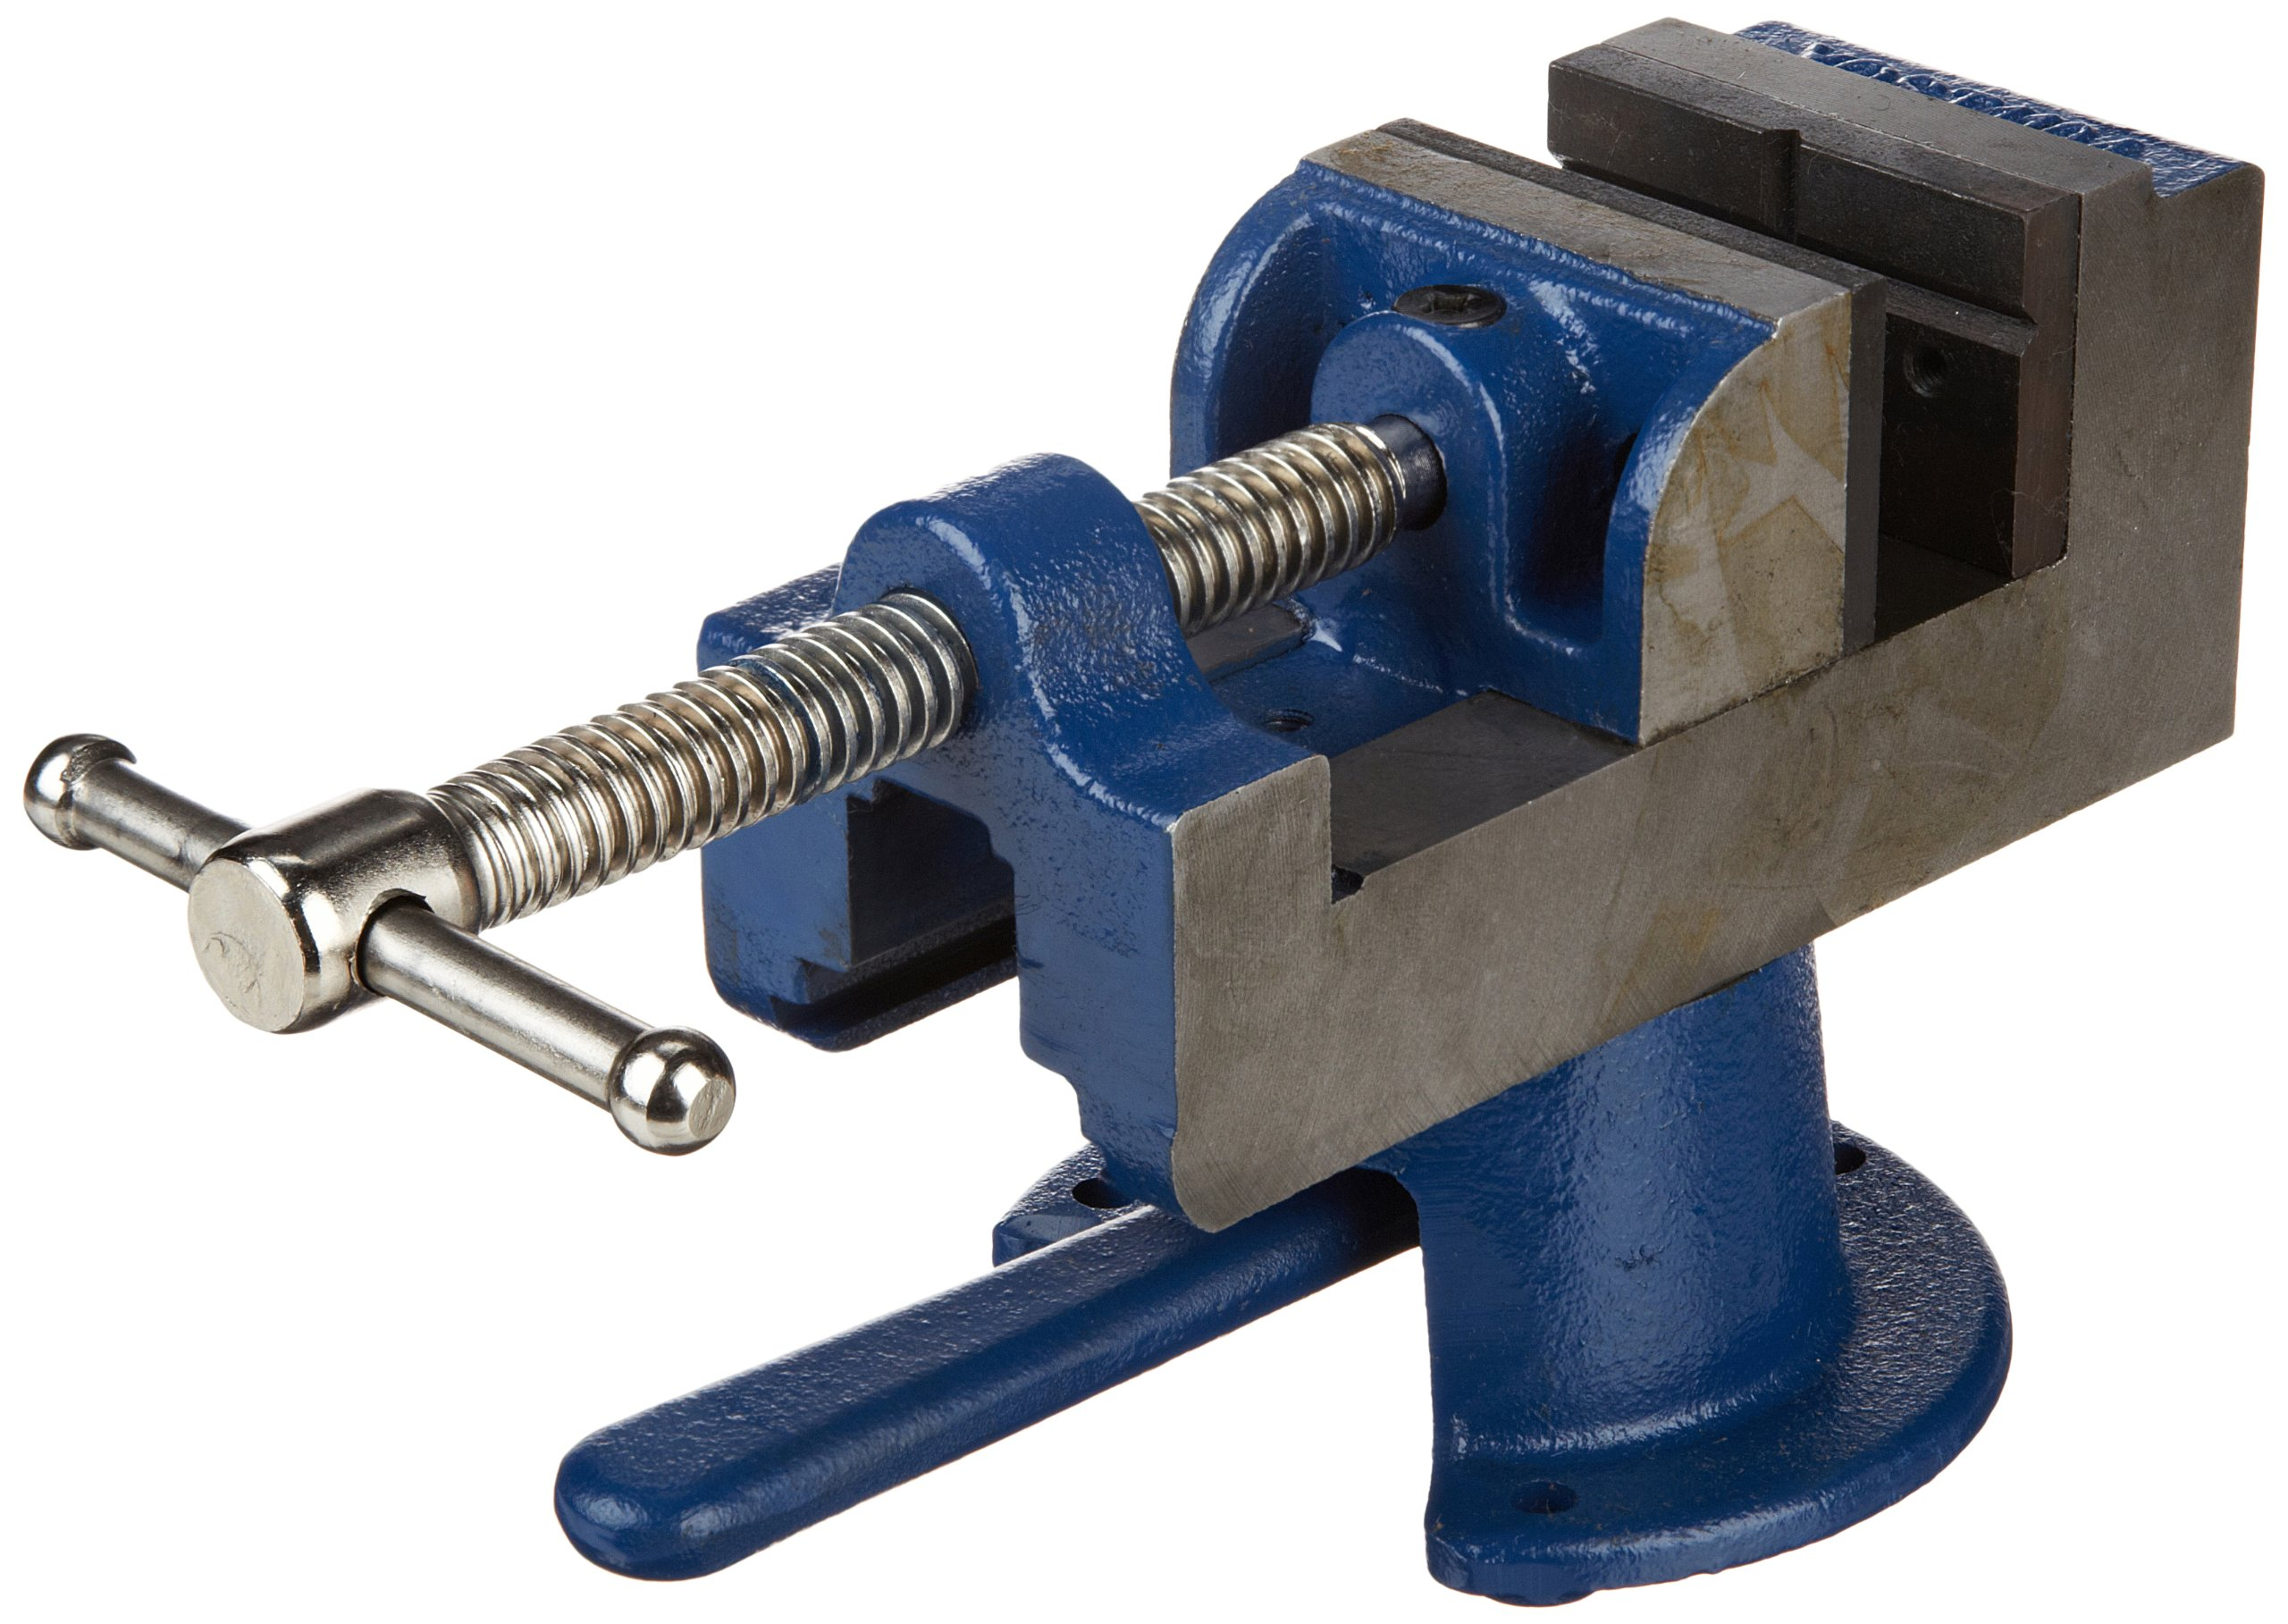 Yost Vises 1104N 2.5'' Drill Press Vise with Stationary Base